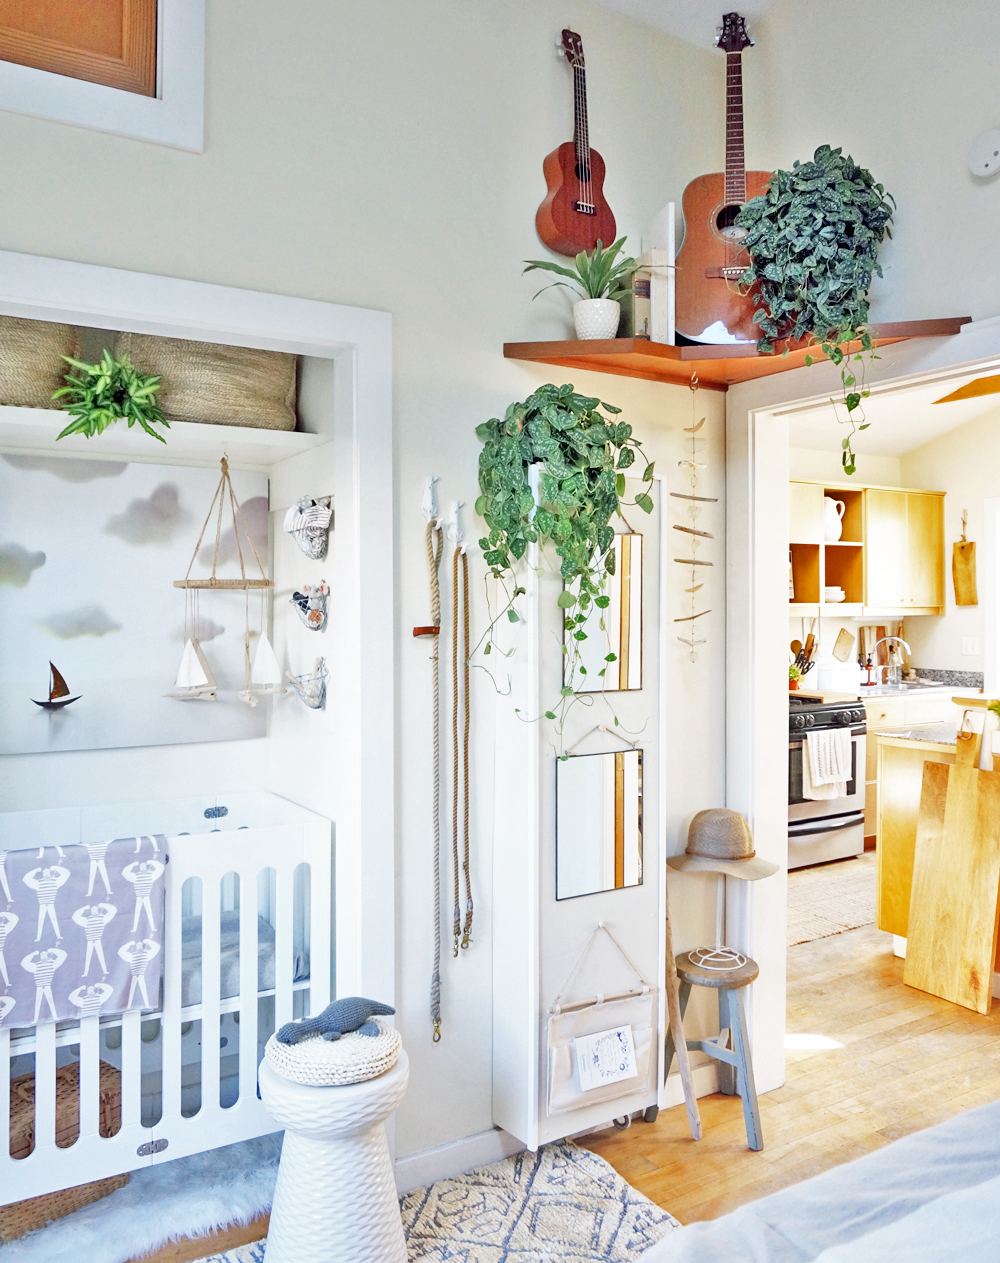 An old tv shelf above the cottage bedroom pocket door holds books, plants, tethered musical instruments, and a hanging sculpture.